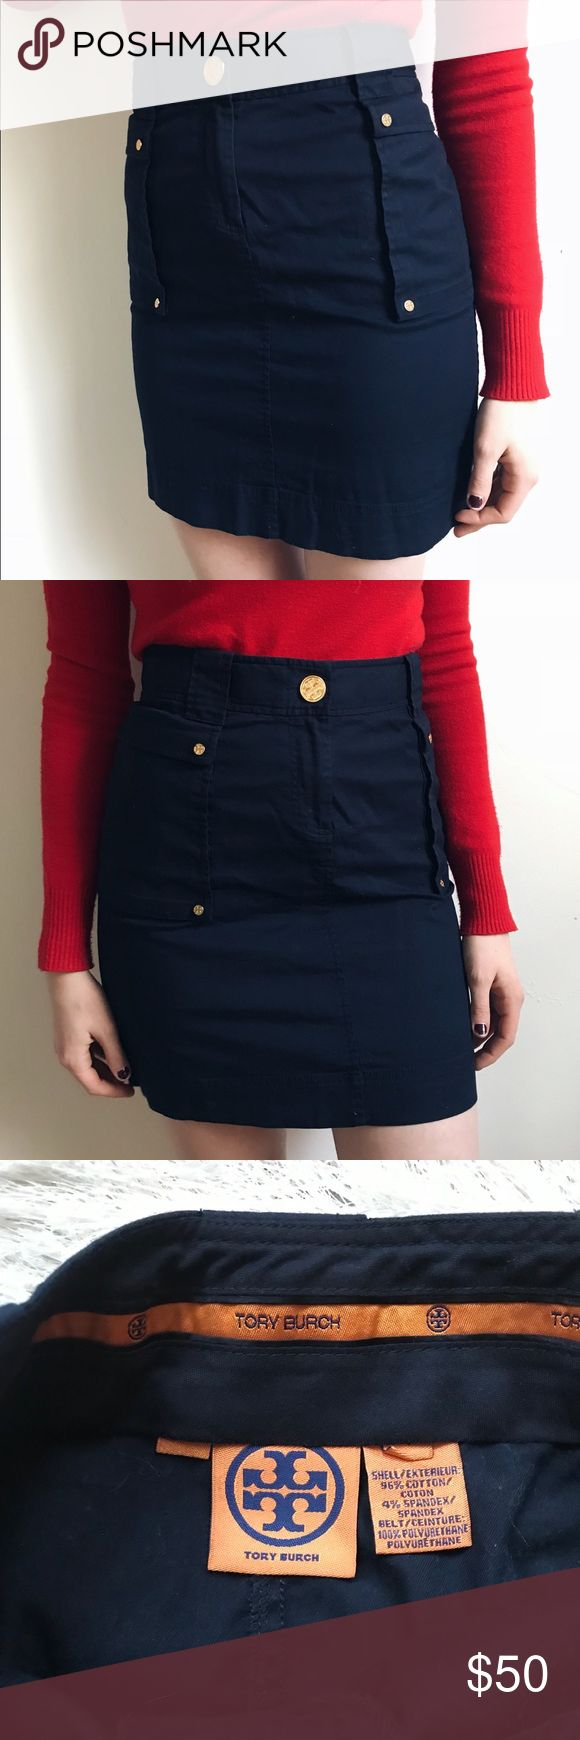 Tory Burch Navy Pencil Skirt True to size navy pencil skirt with gold hardware by Tory Burch. Very classic and a staple piece. It's only been worn a couple times, in very good condition. Two side pockets bordered with gold buttons. Tory Burch Skirts Pencil